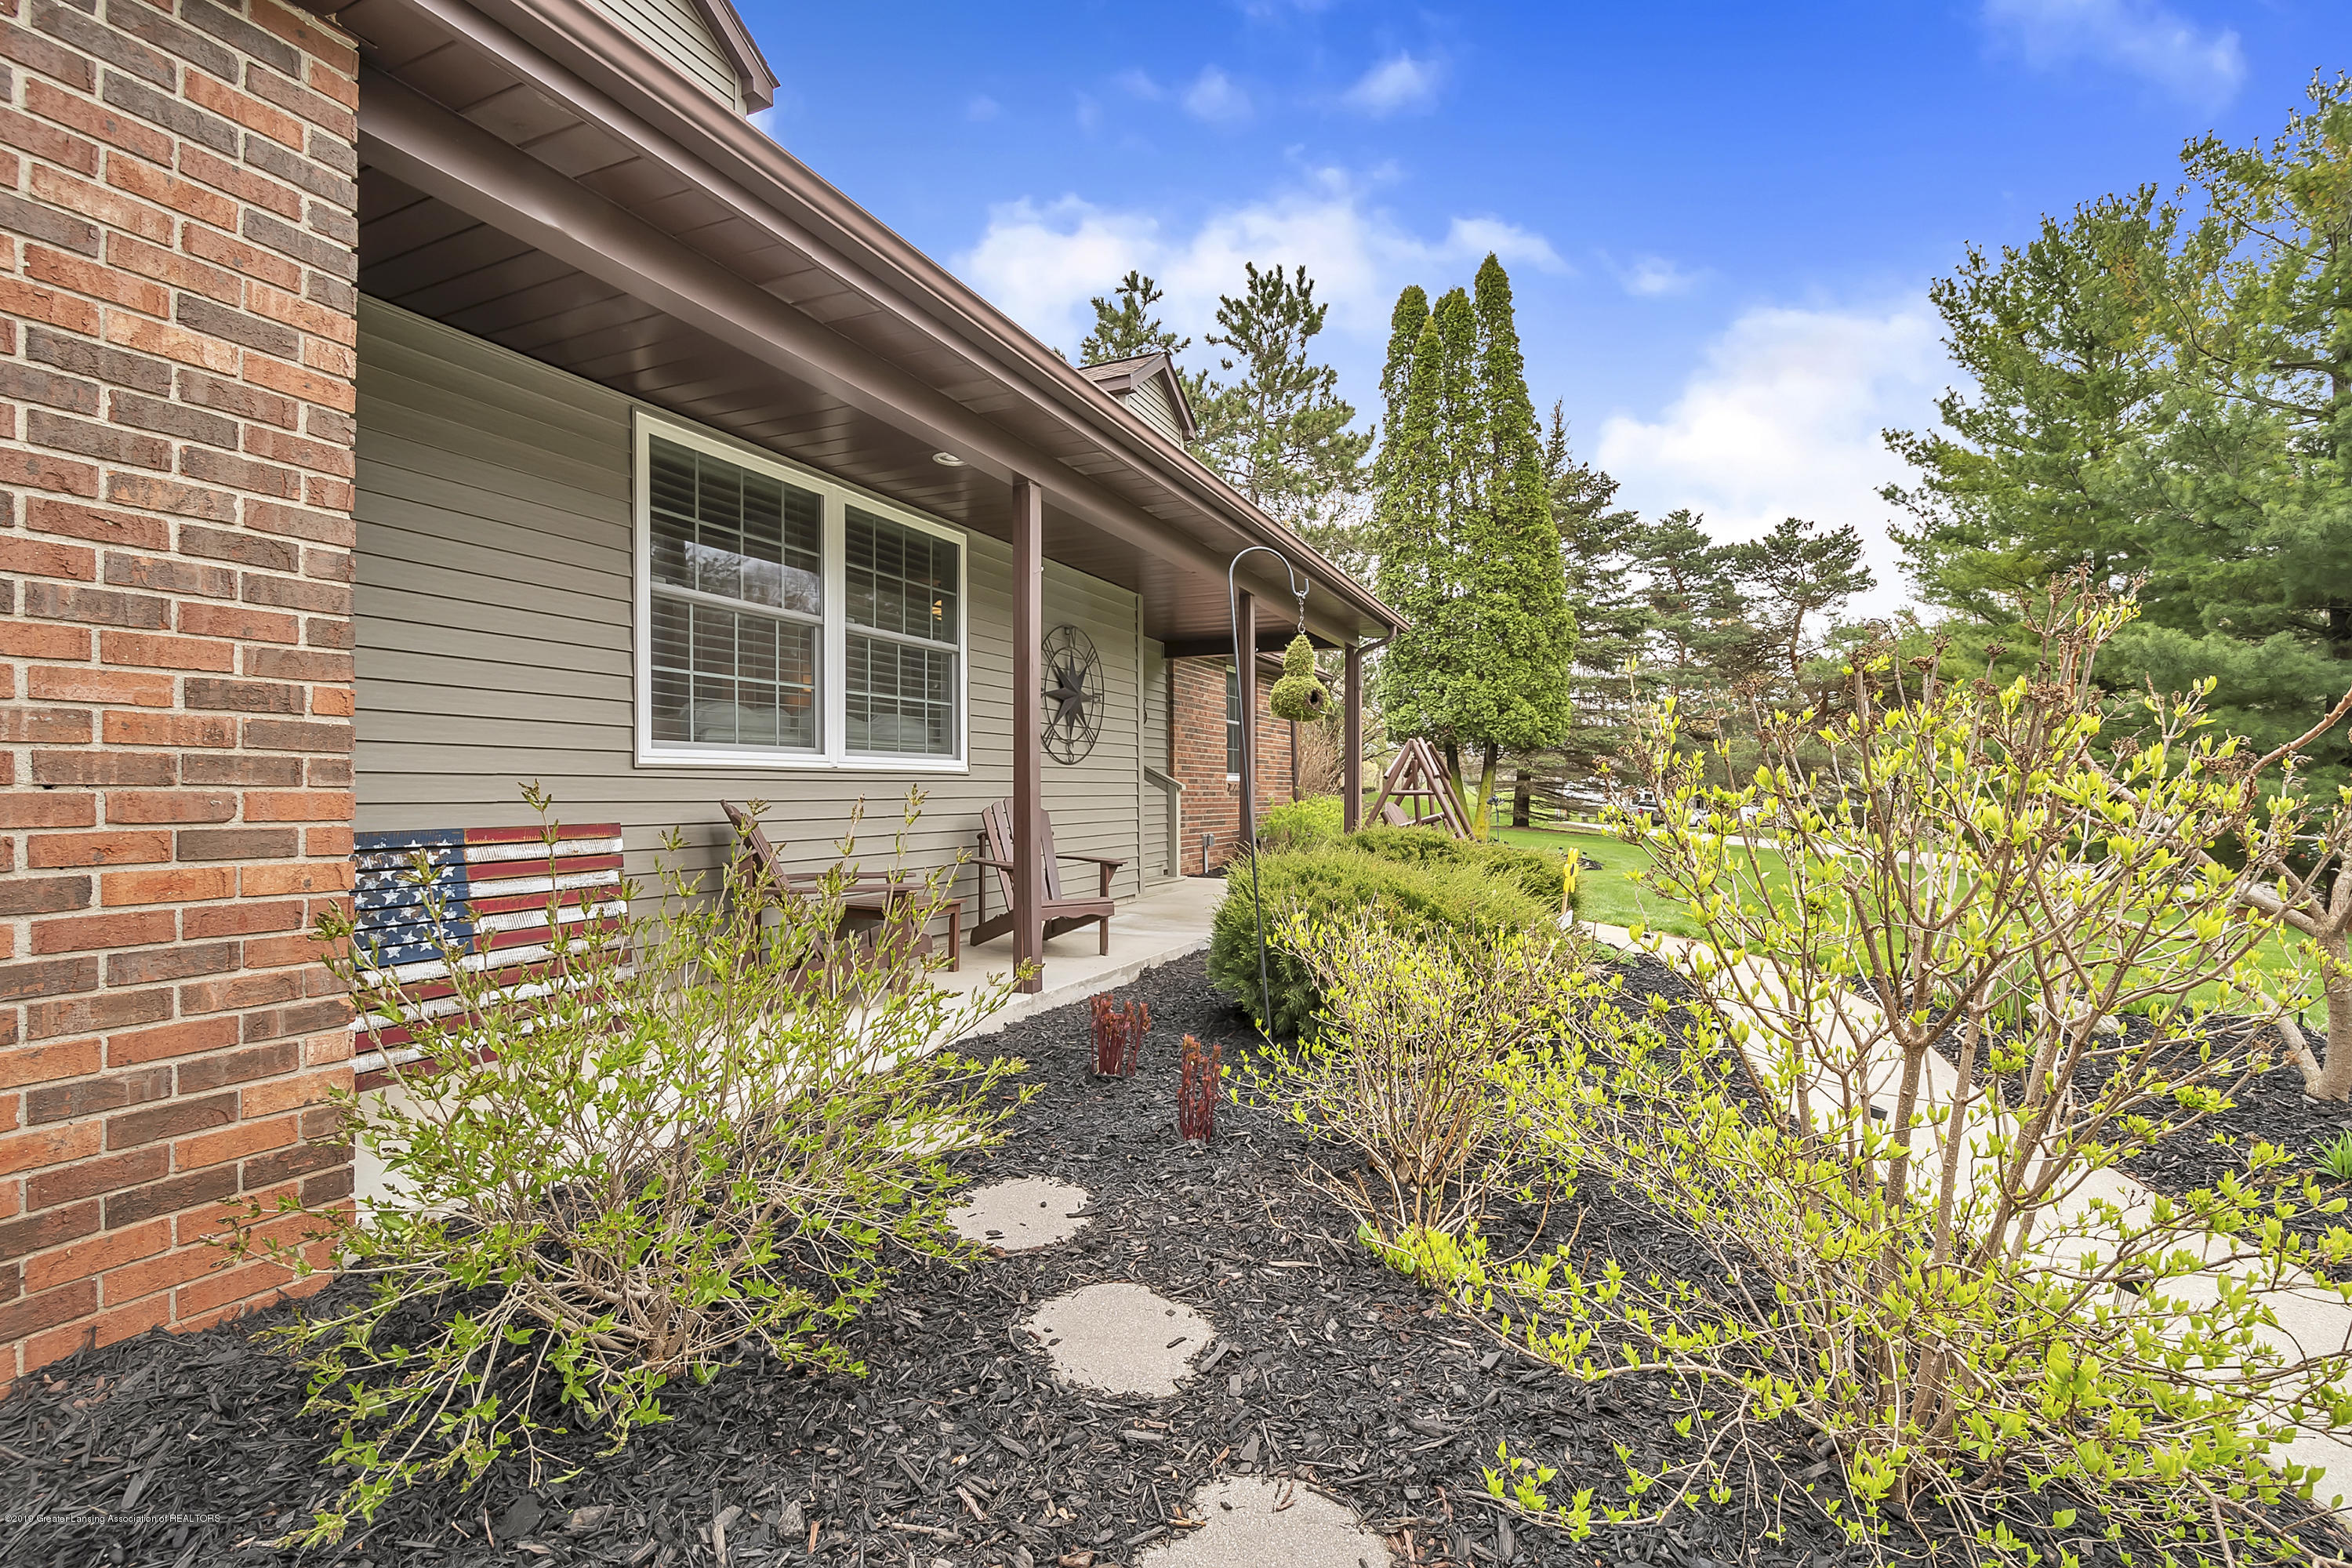 5075 Lake Dr - 5075-Lake-Dr-Owosso-windowstill-6 - 6